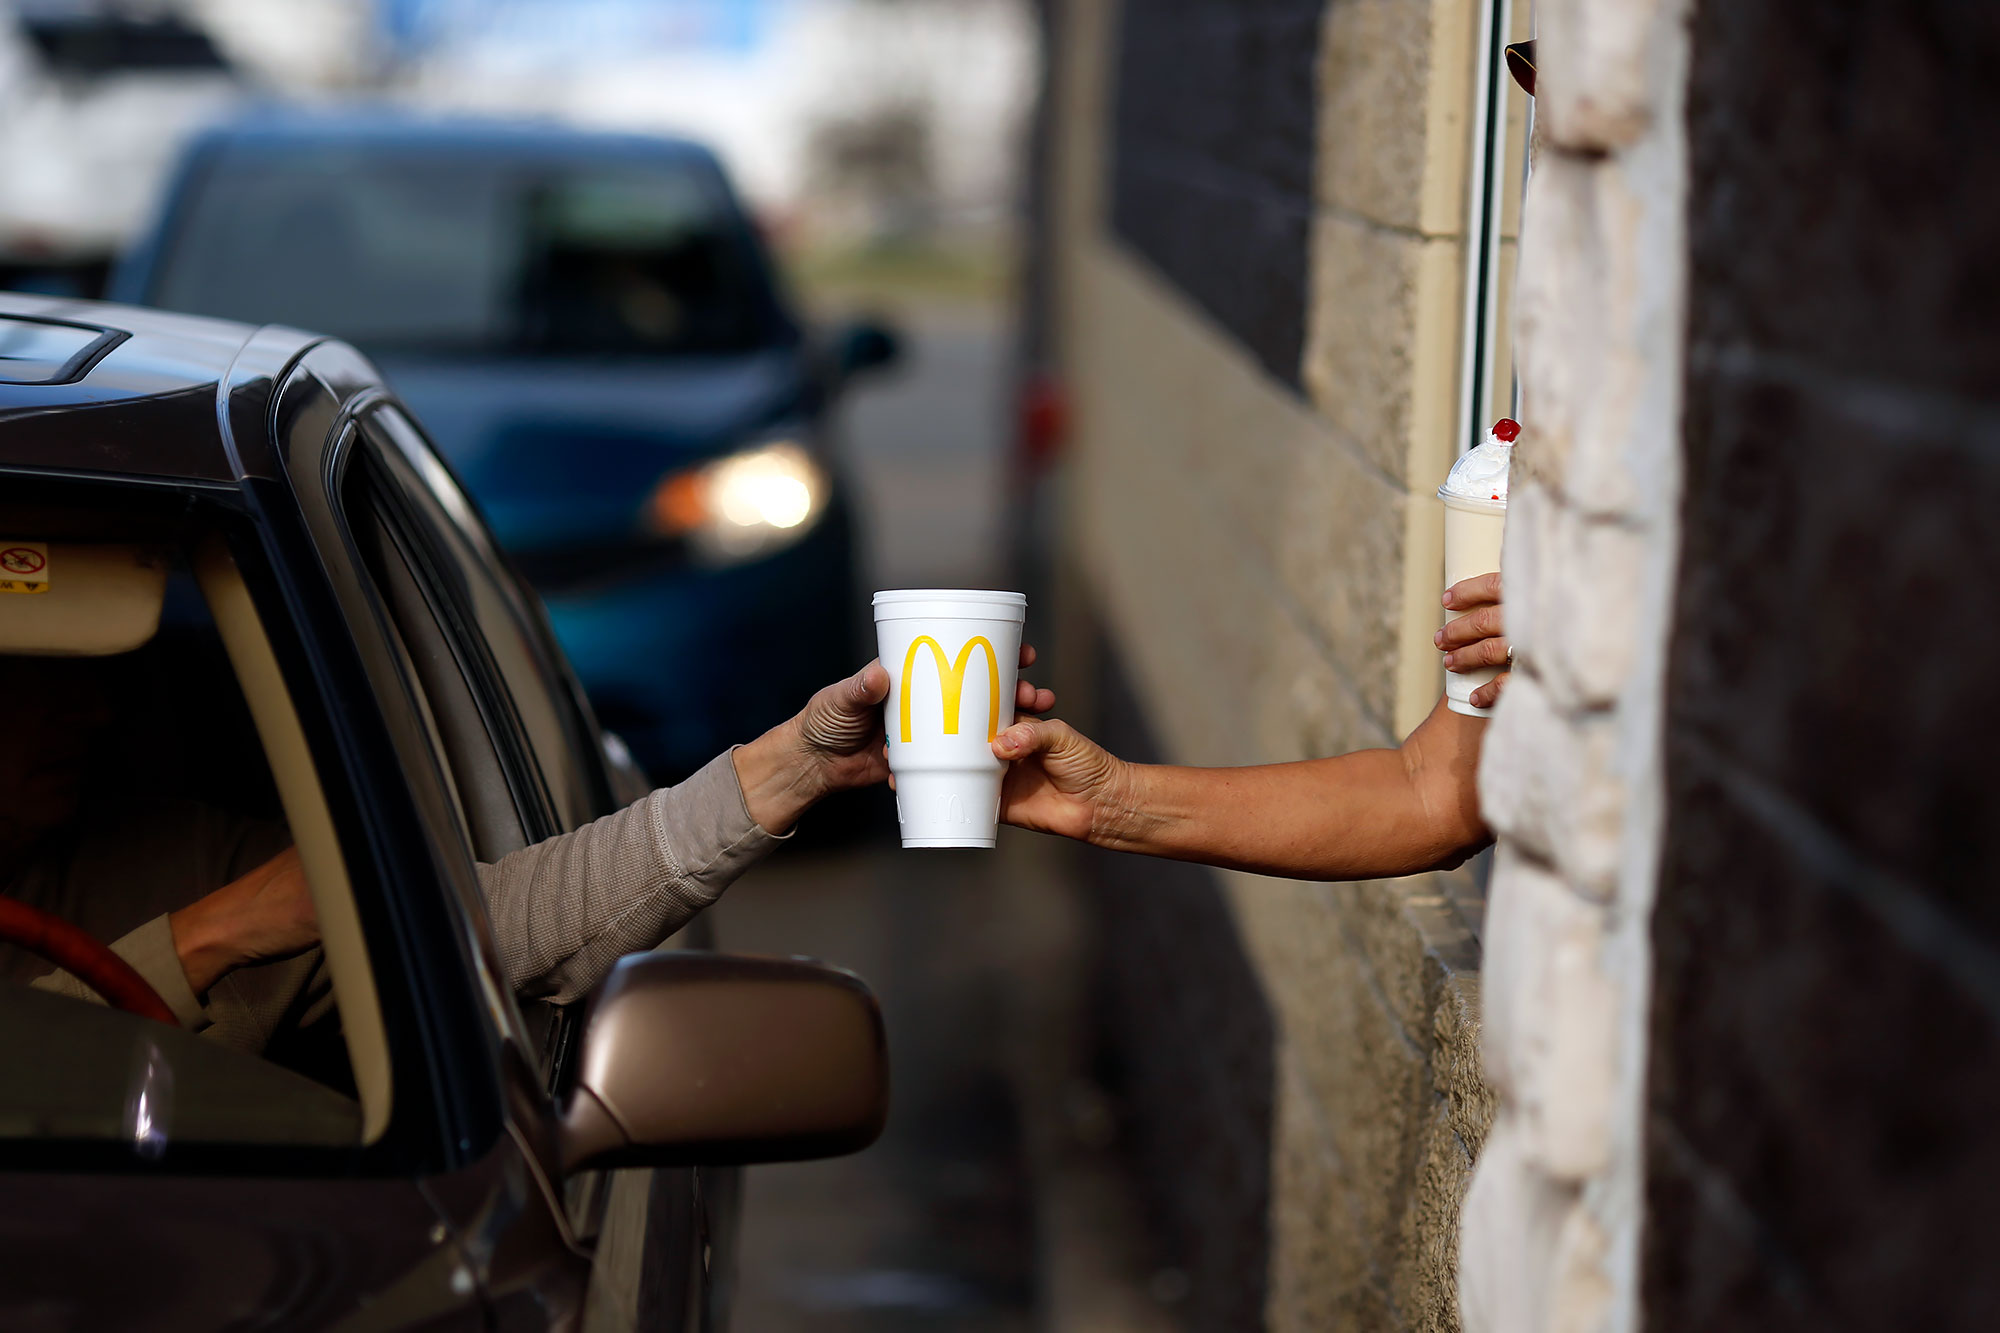 A worker passes a beverage to a customer at the drive-thru window at a McDonald's fast food restaurant